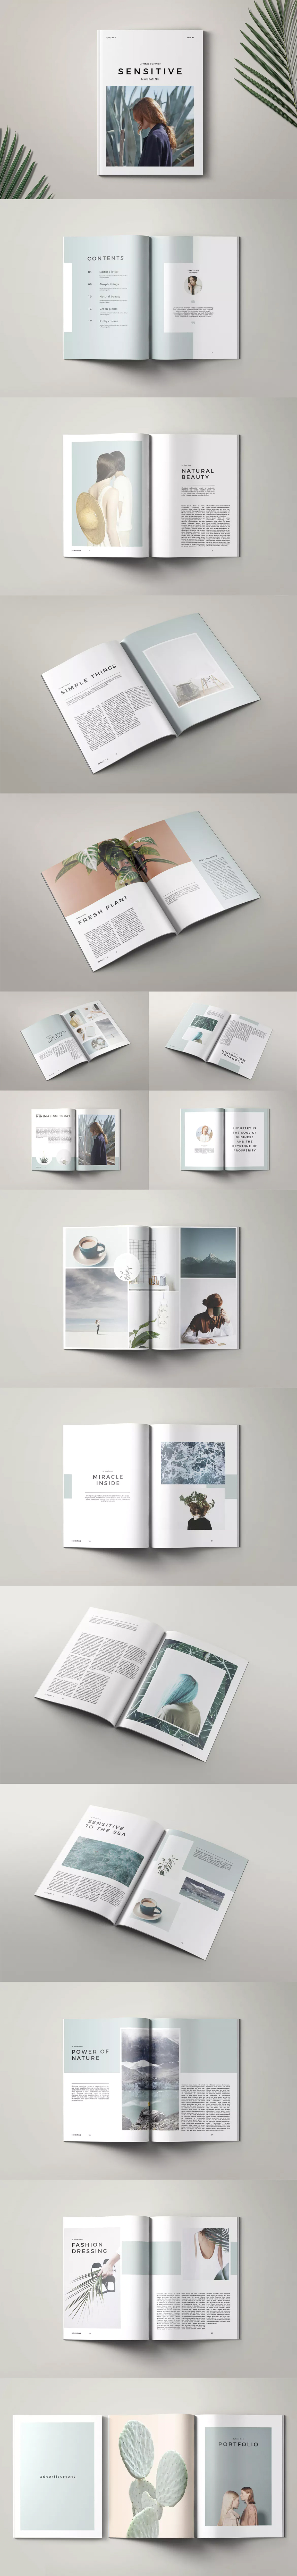 Sensitive Magazine Template InDesign - A4 and US Letter Size ...